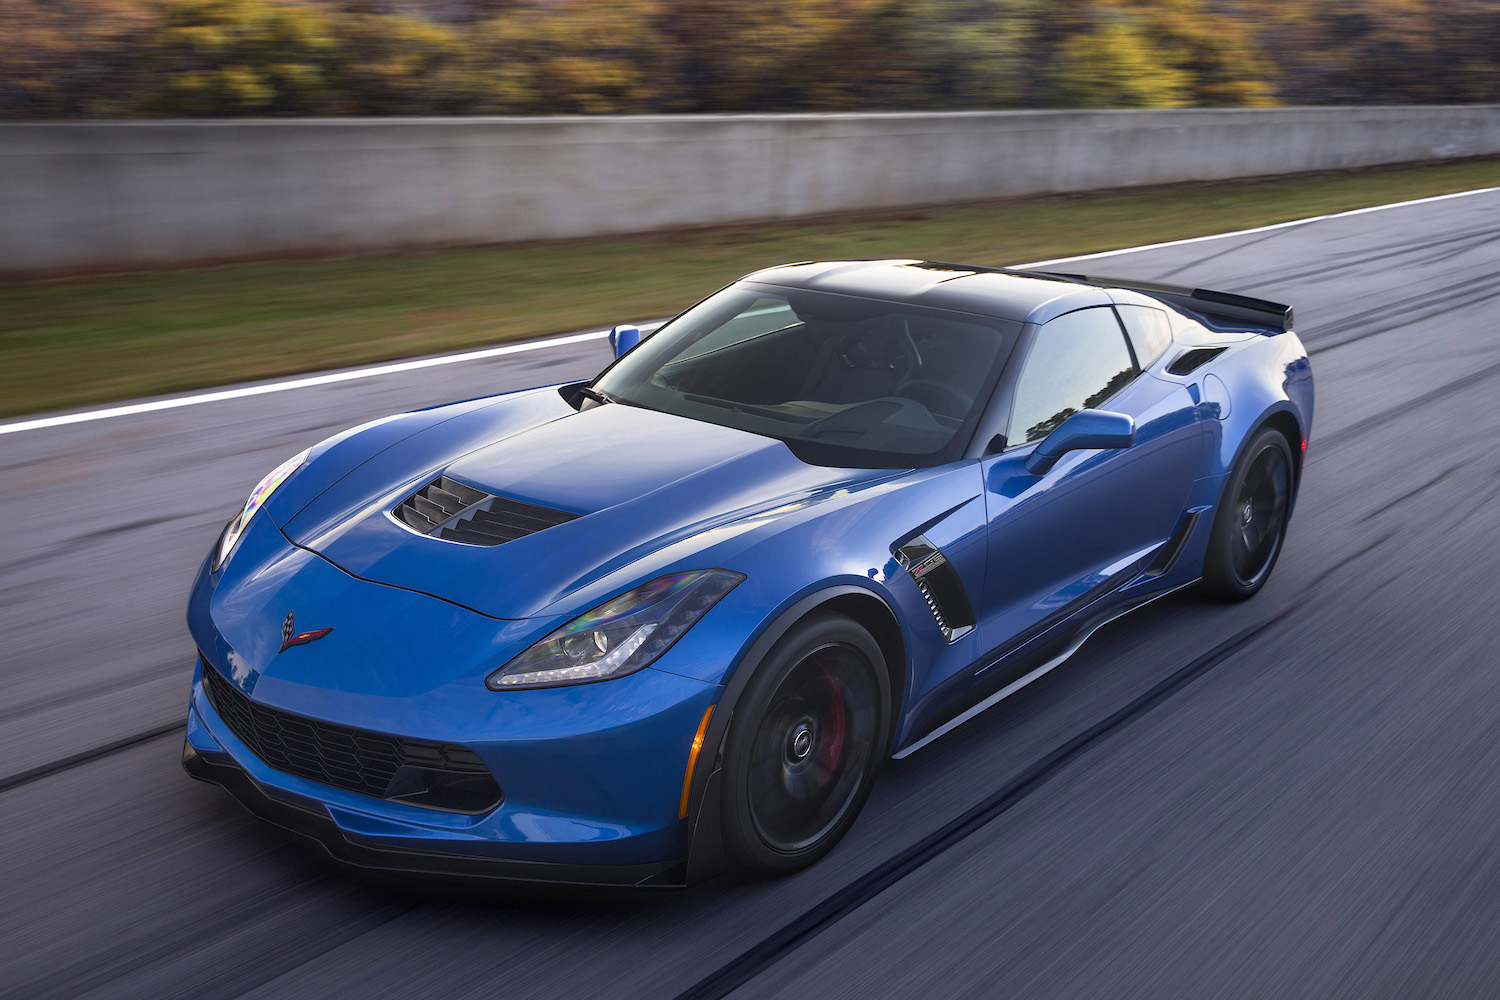 2016 blue c7 z06 corvette on track front three-quarter